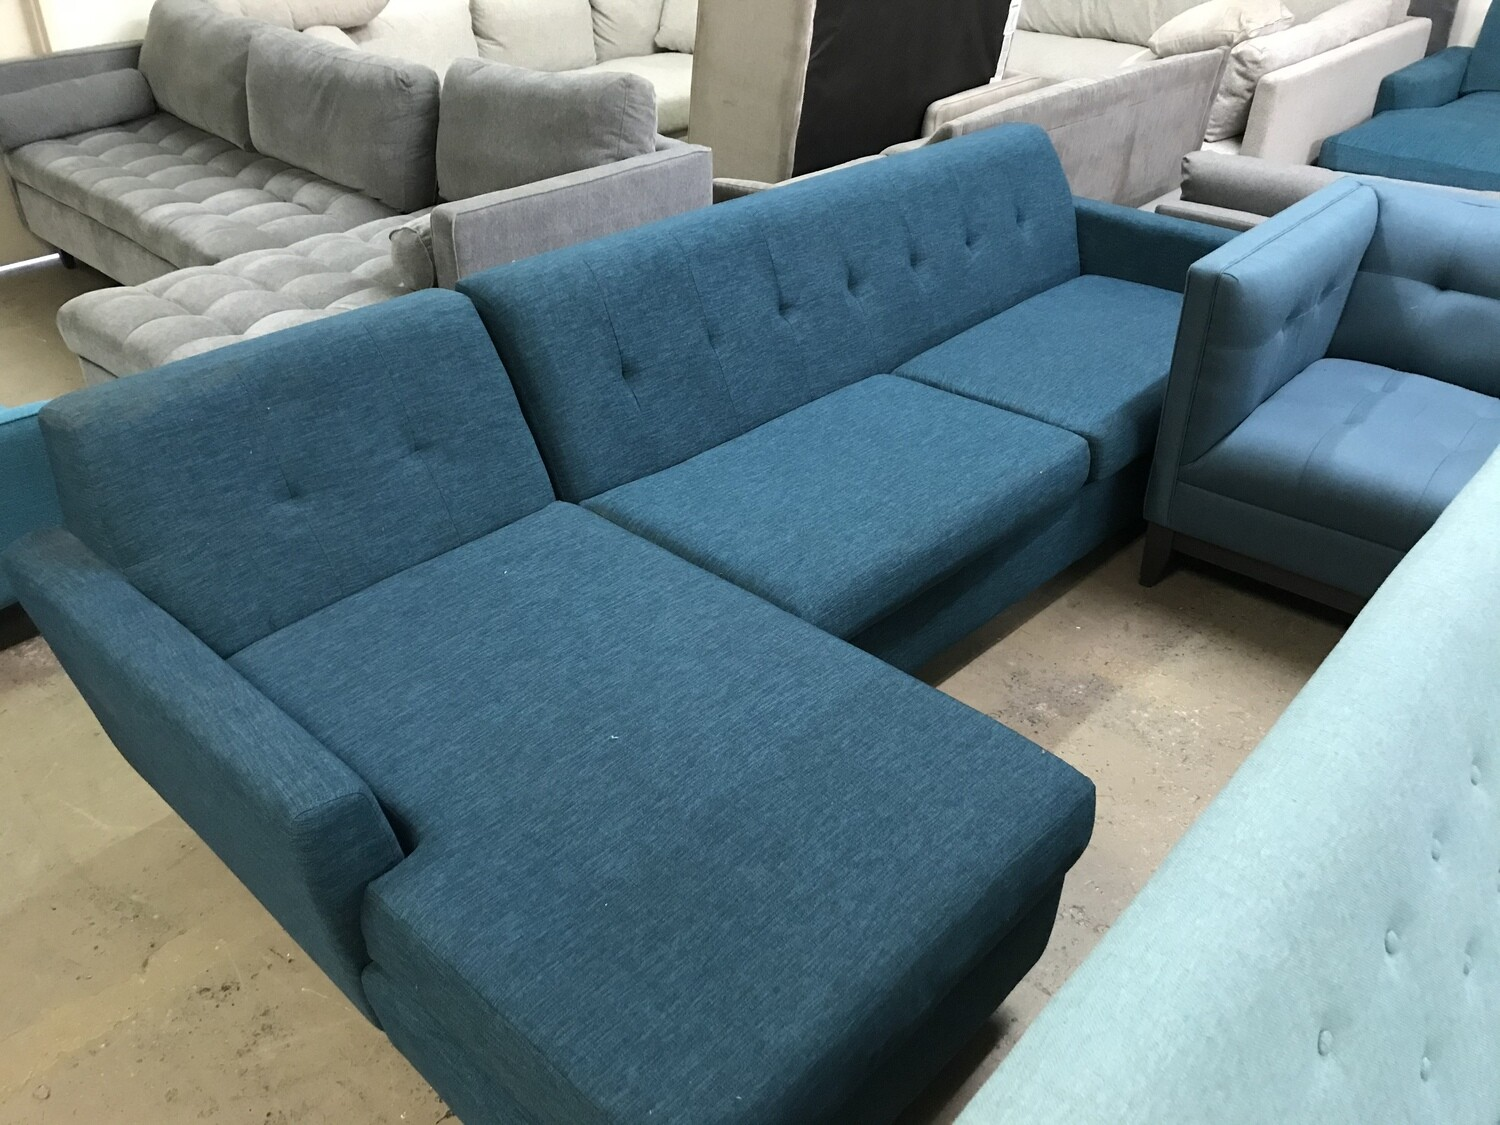 JB Hughes Sleeper Sectional - Key Largo Zenith Teal